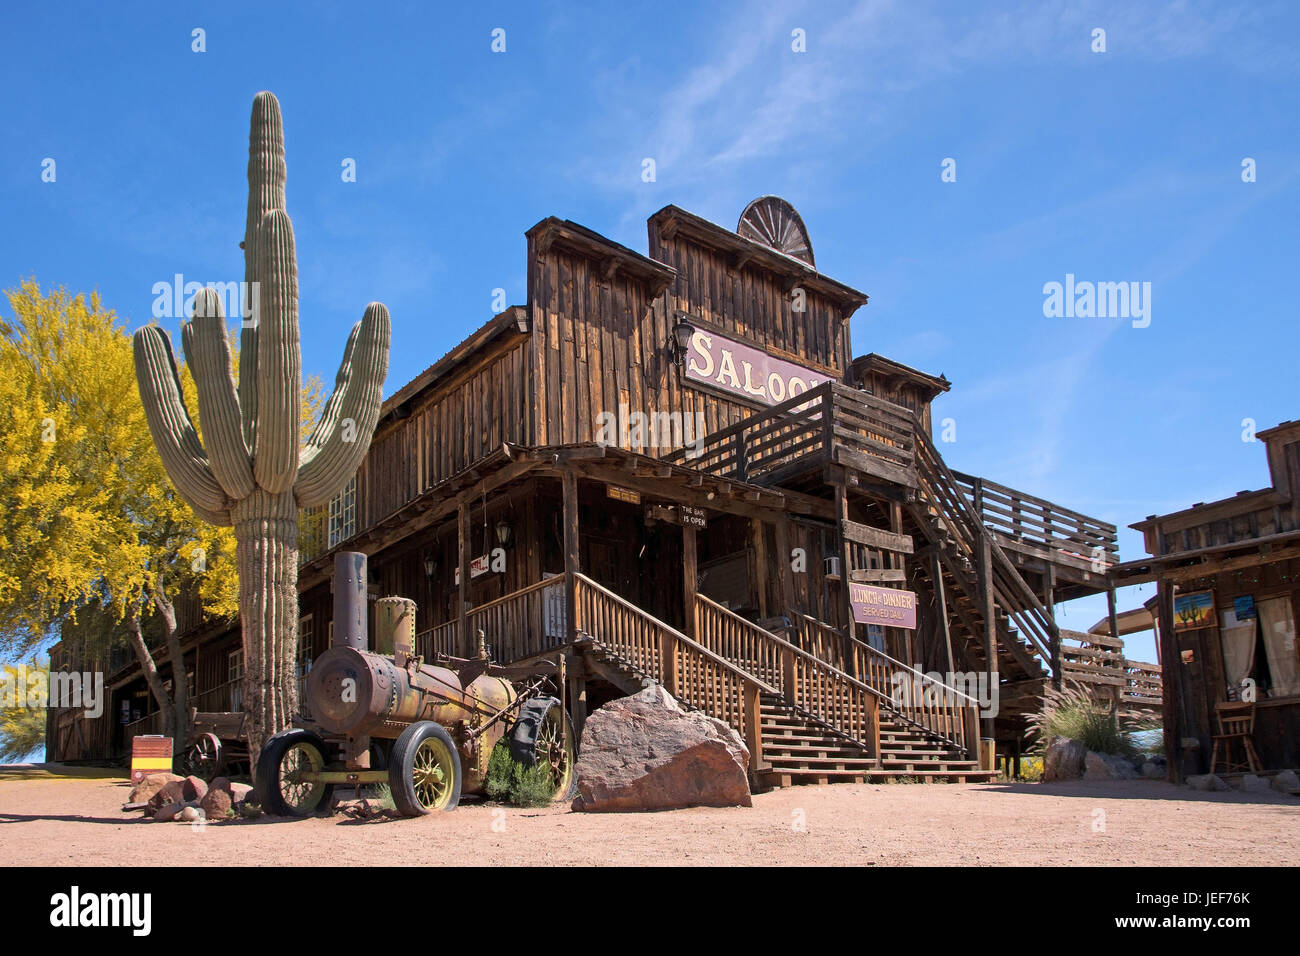 Ghosttown in Arizona, the USA, which is a completely abandoned or semi-abandoned town or city., USA - Stock Image